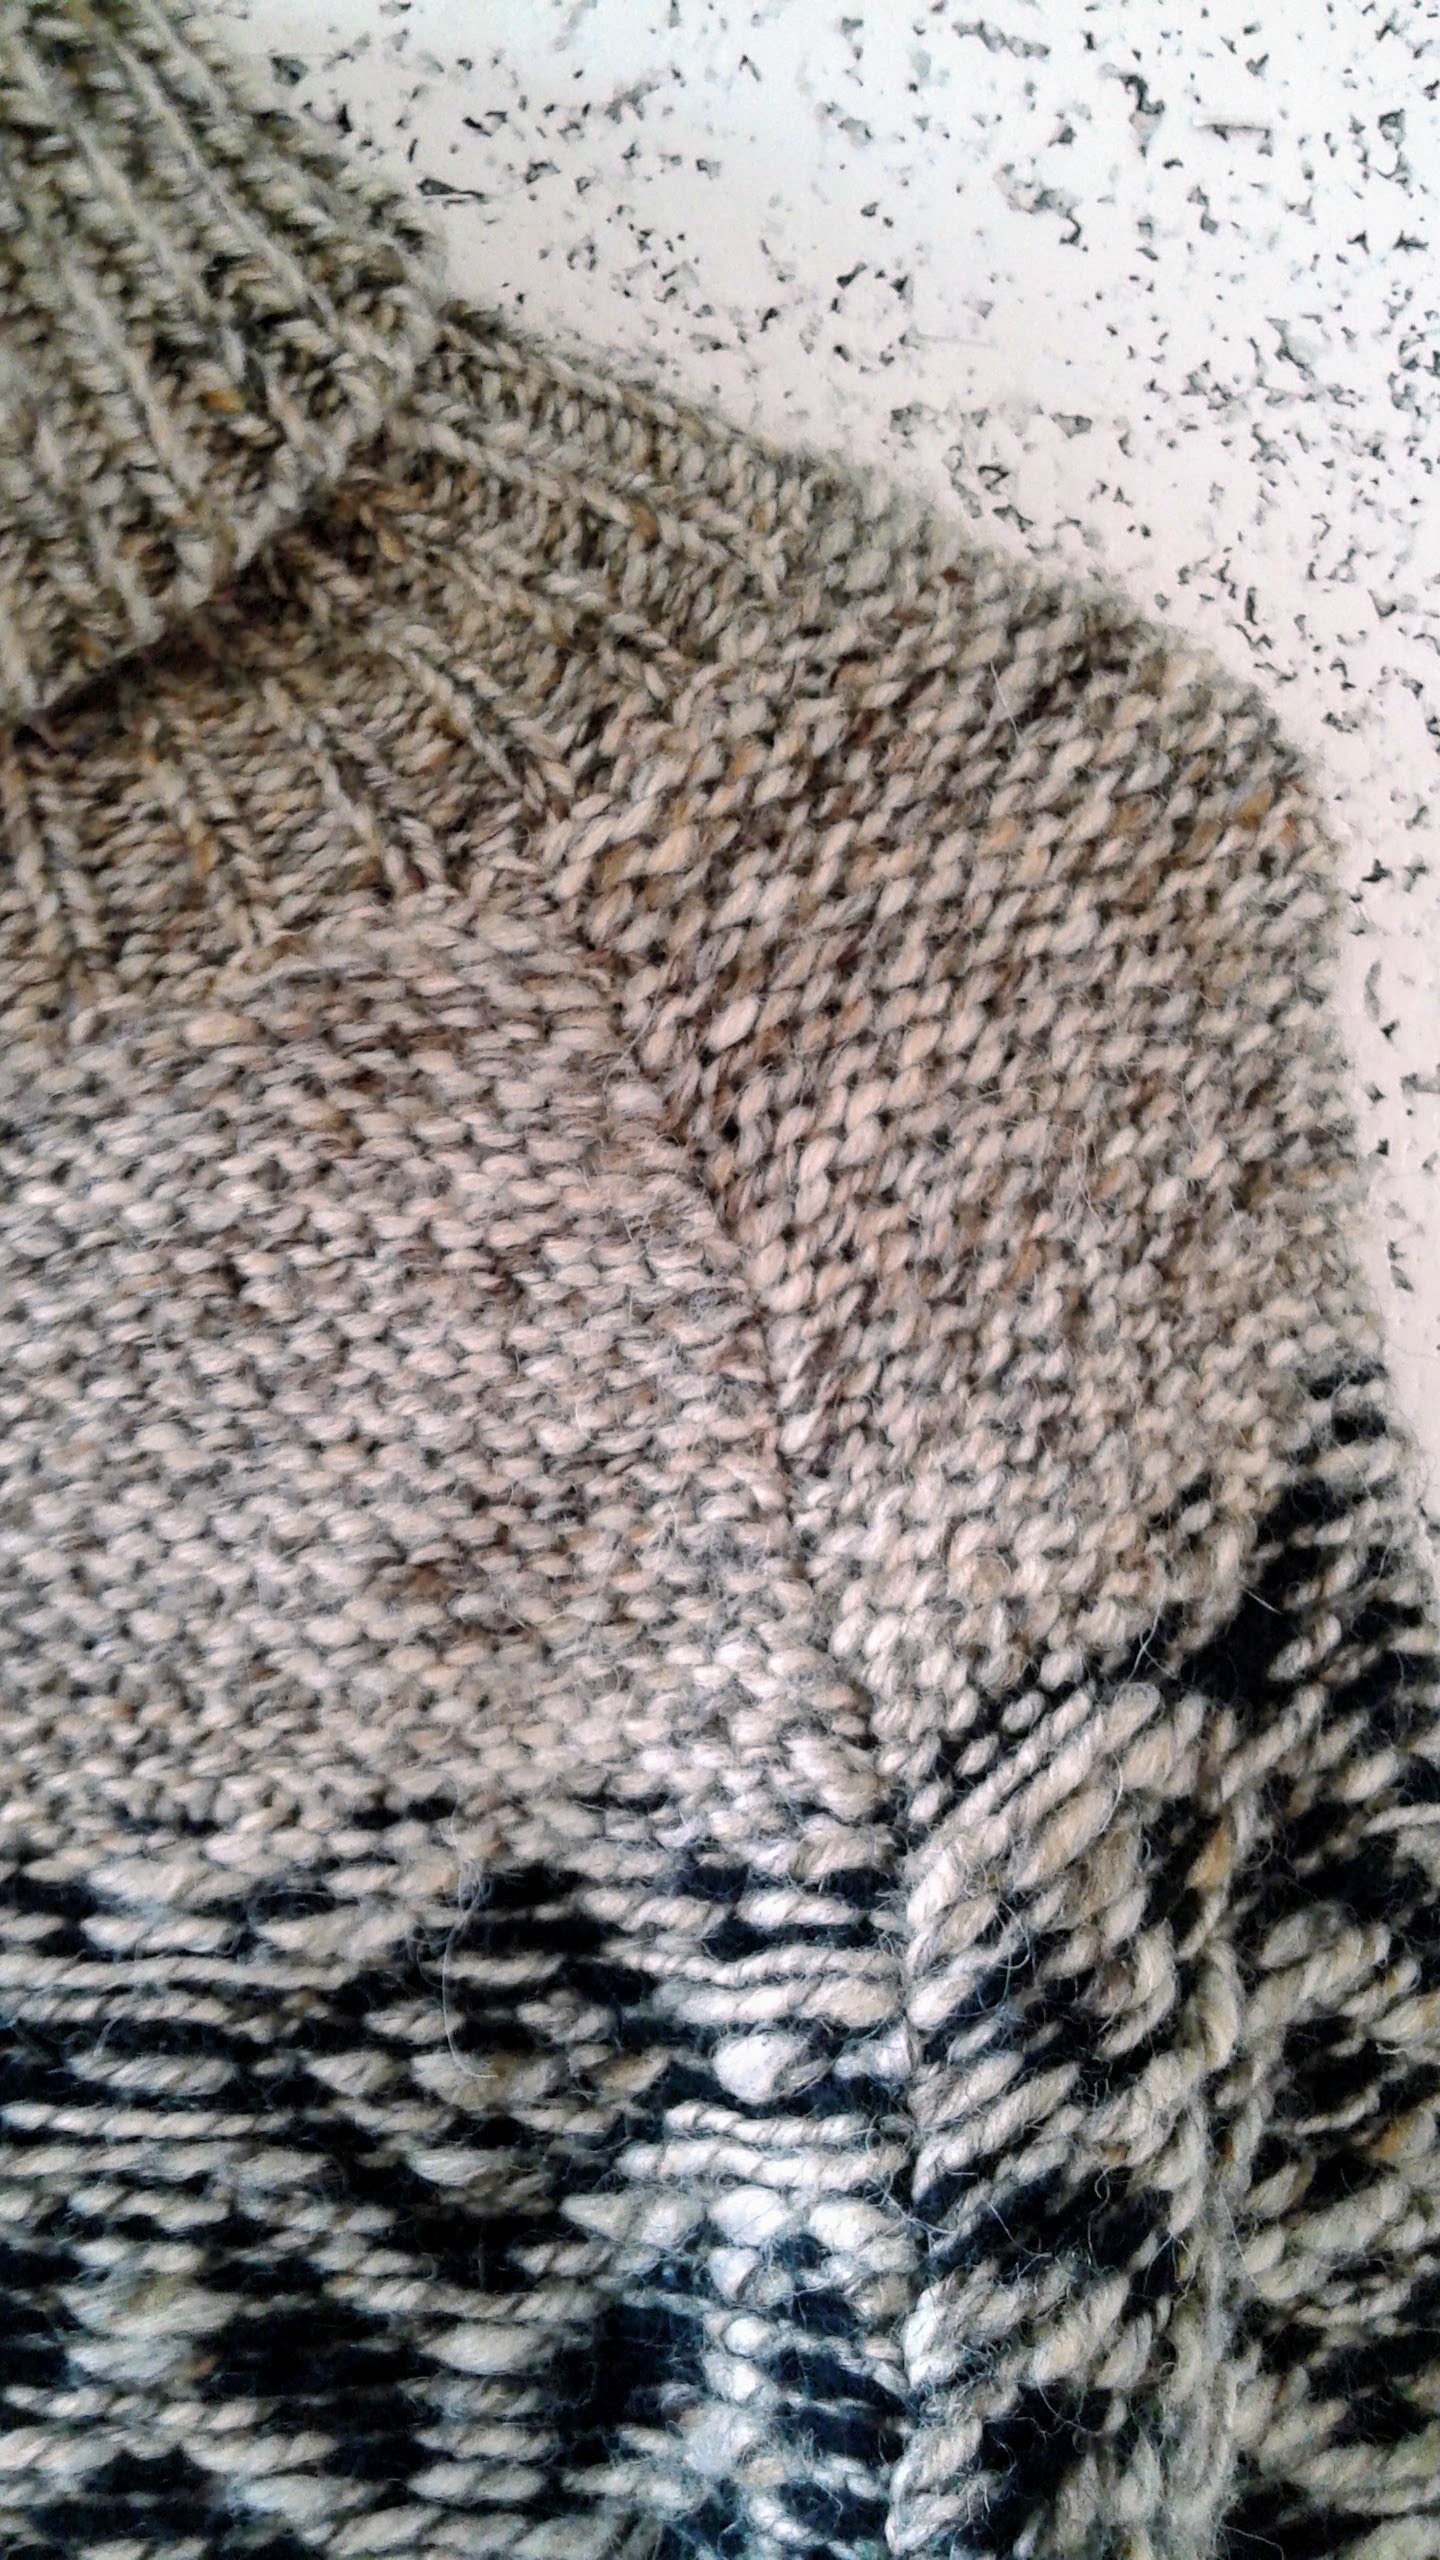 Floats and pearl set (WS effect of stockinette stitch)across the yolk